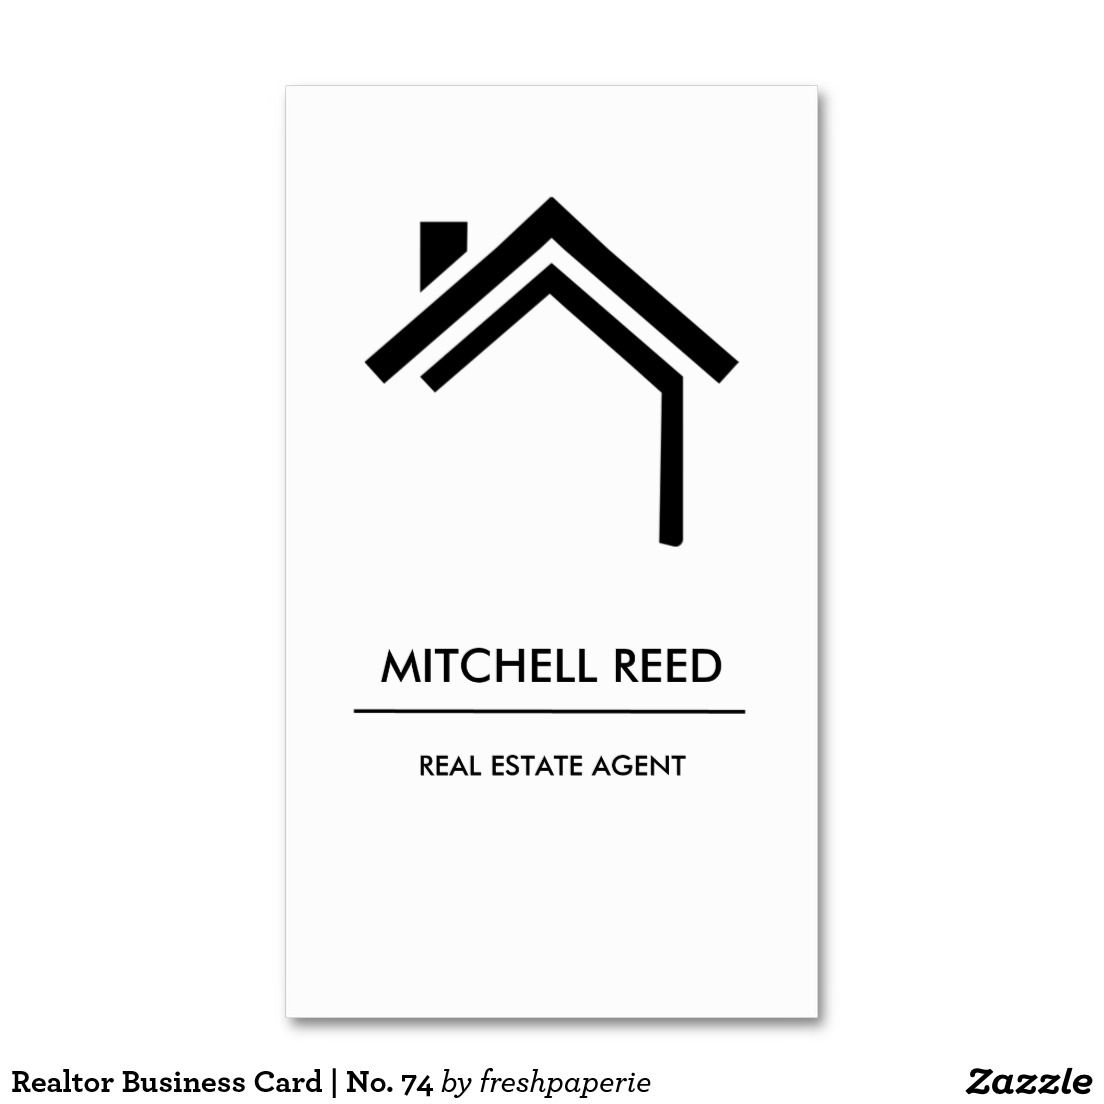 Real Estate Agent Business Card | No. 74 | Business cards, Business ...